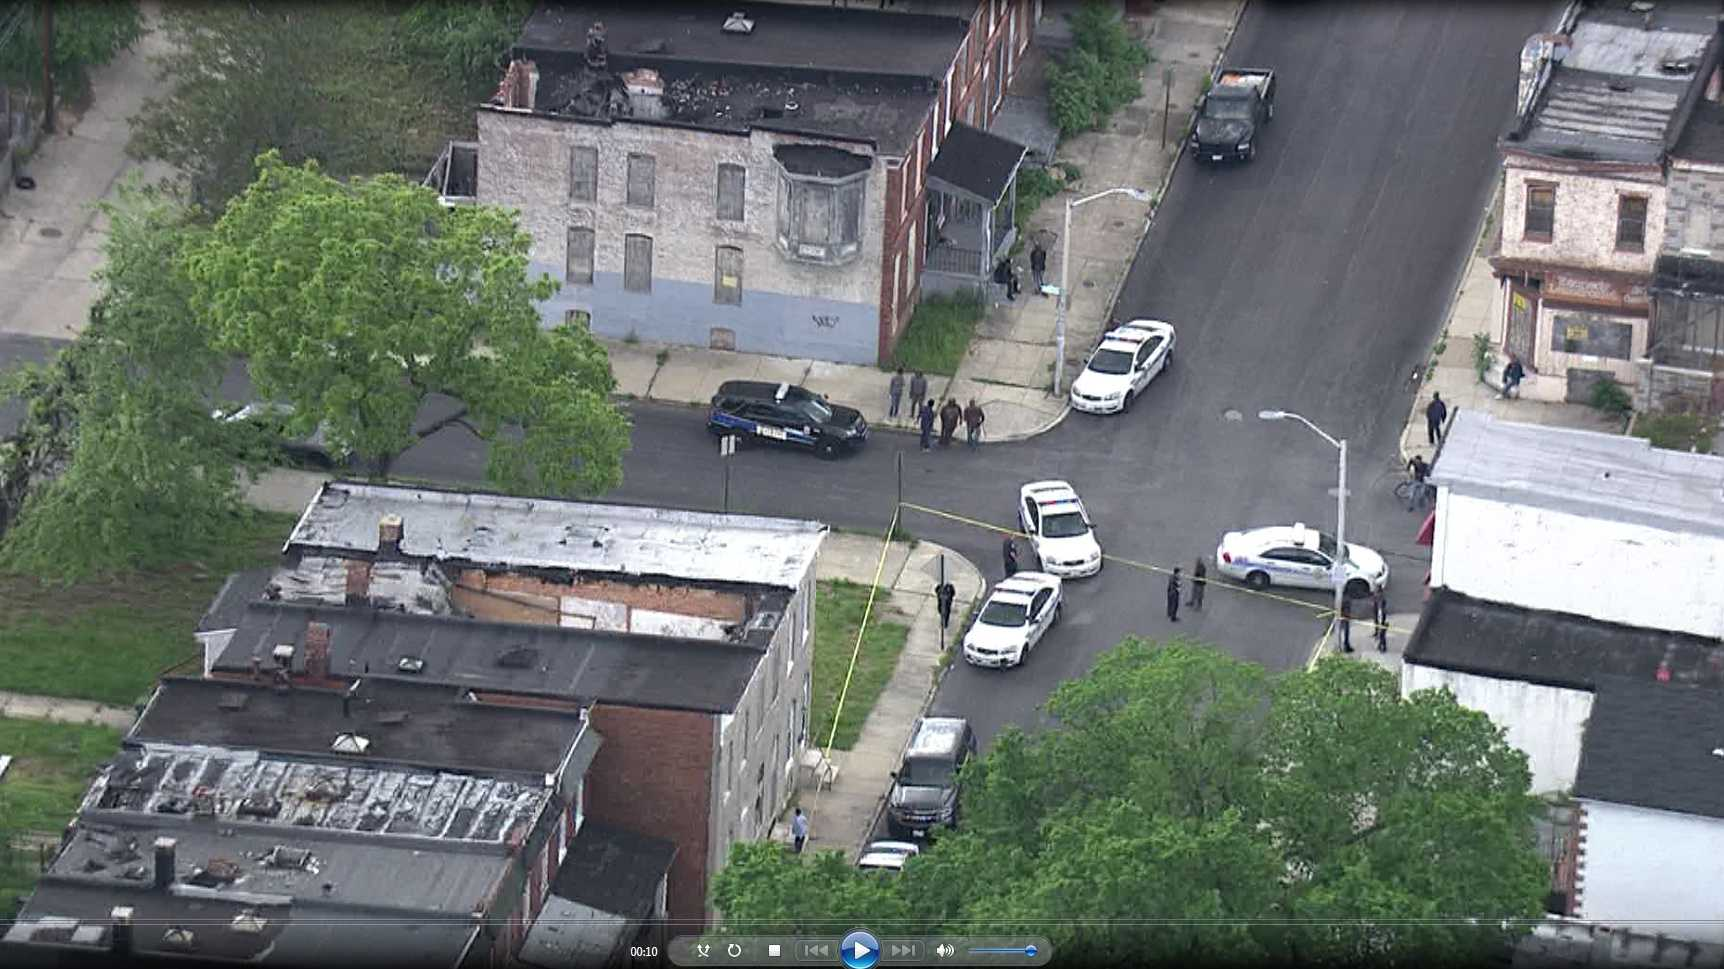 Baltimore police are investigating a shooting that happened late Thursday afternoon in the 1600 block of Abbottson Street.